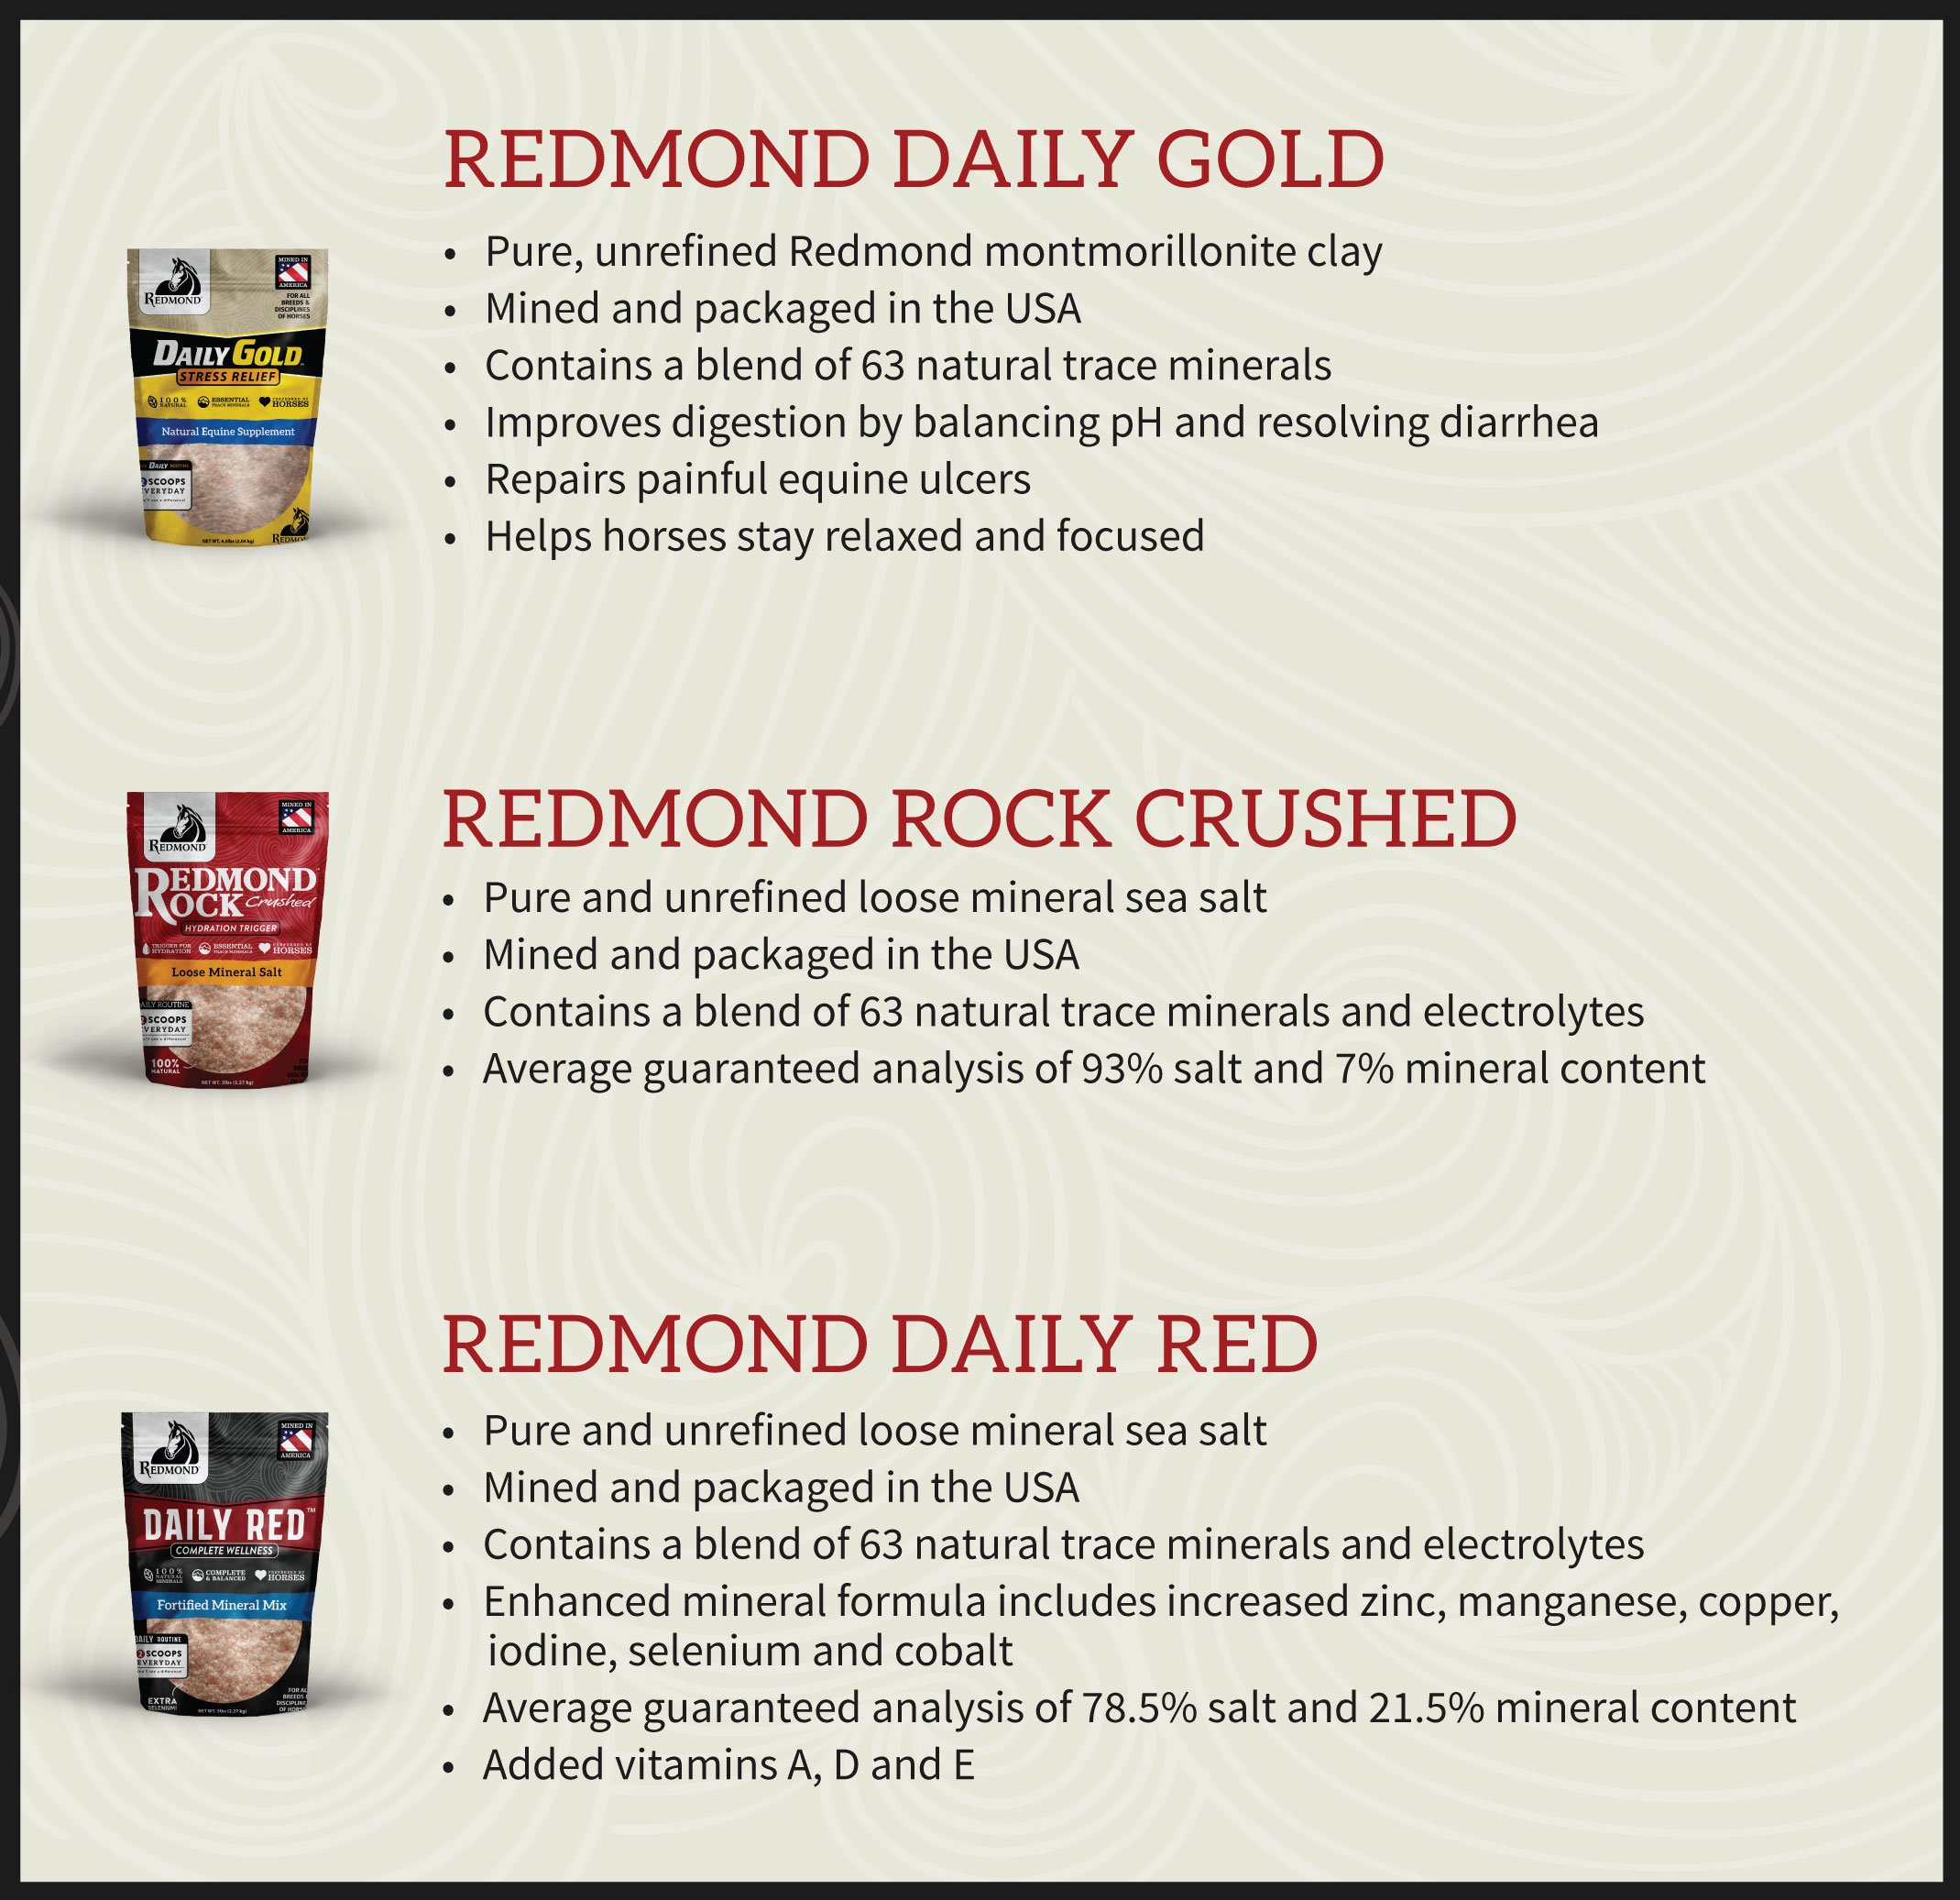 Daily Gold, Daily Red, Crushed comparison